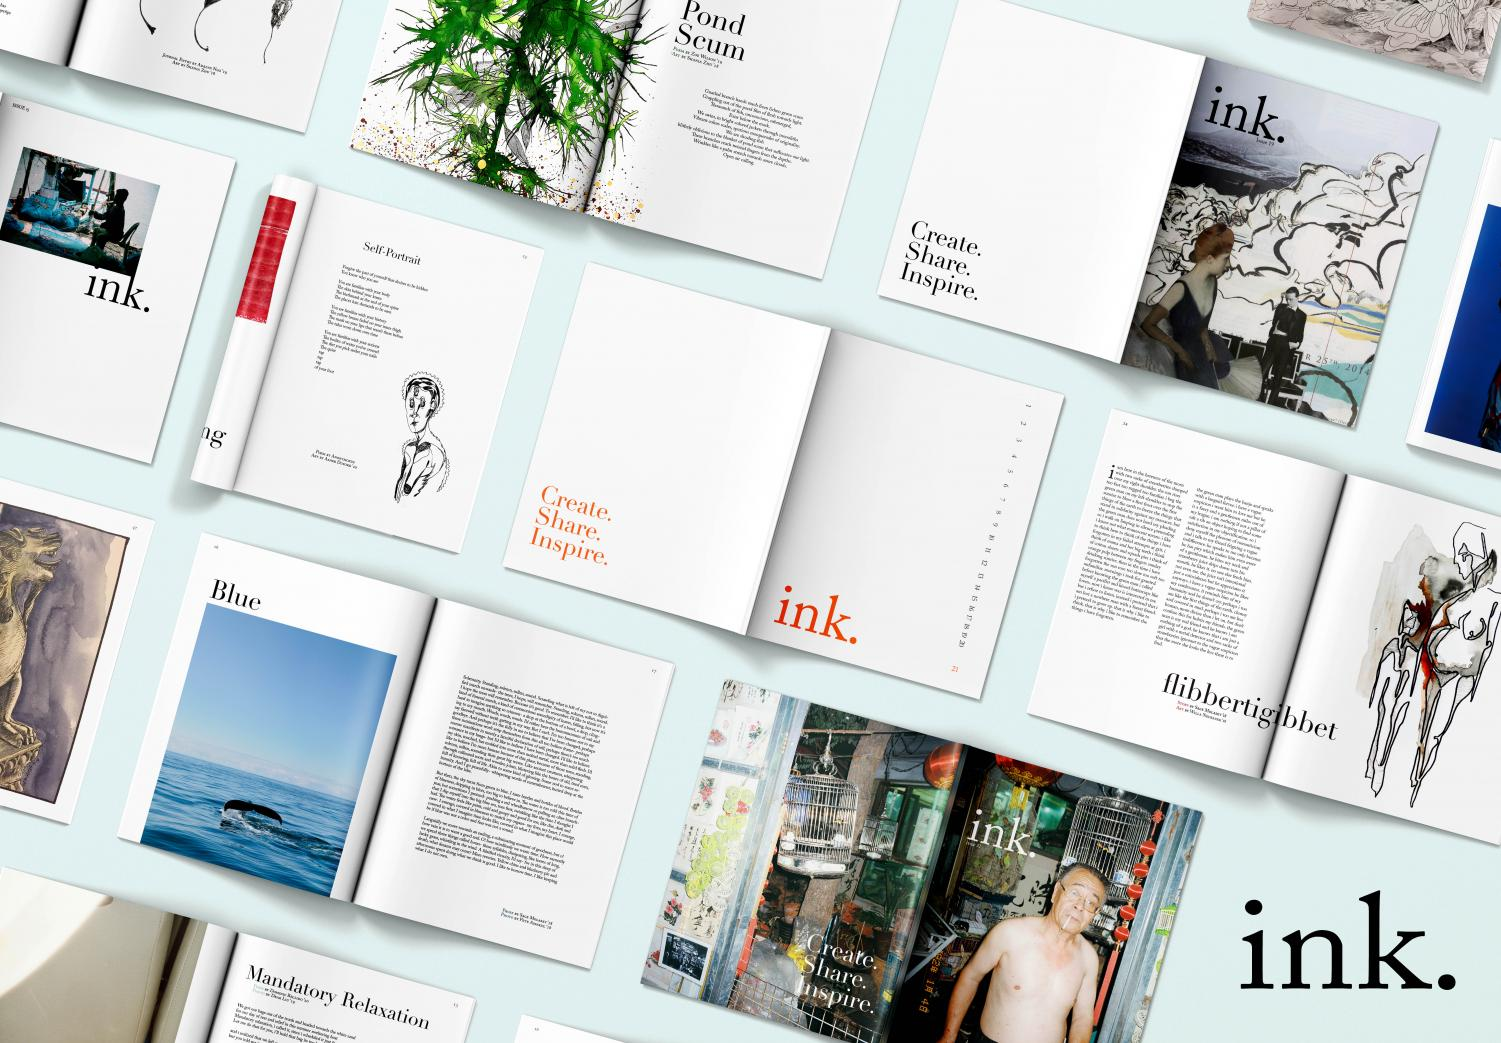 A compilation of ink.'s most recent issues.